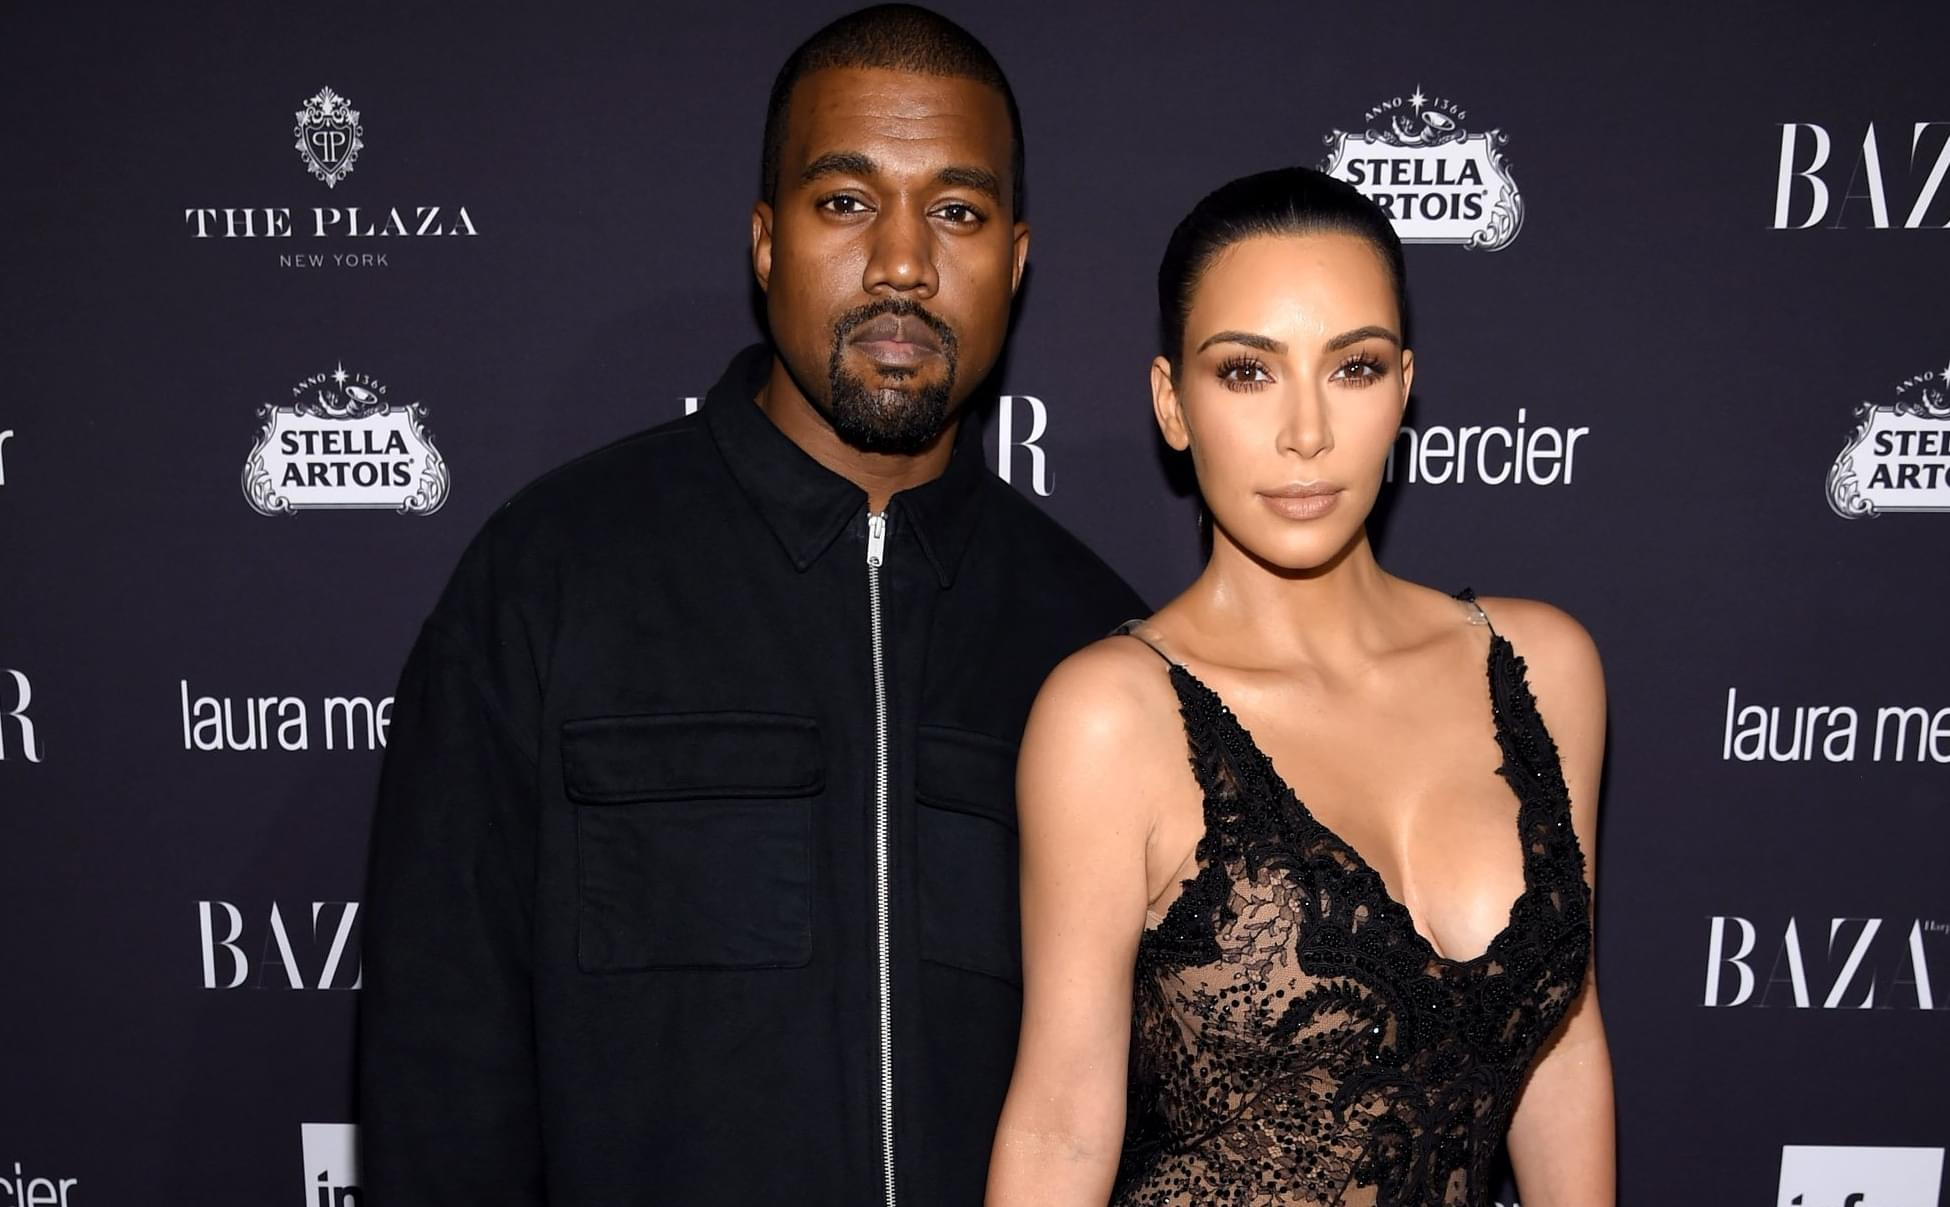 KIM KARDASHIAN WEST ON KANYE REVEALING THEIR MARITAL DRAMA